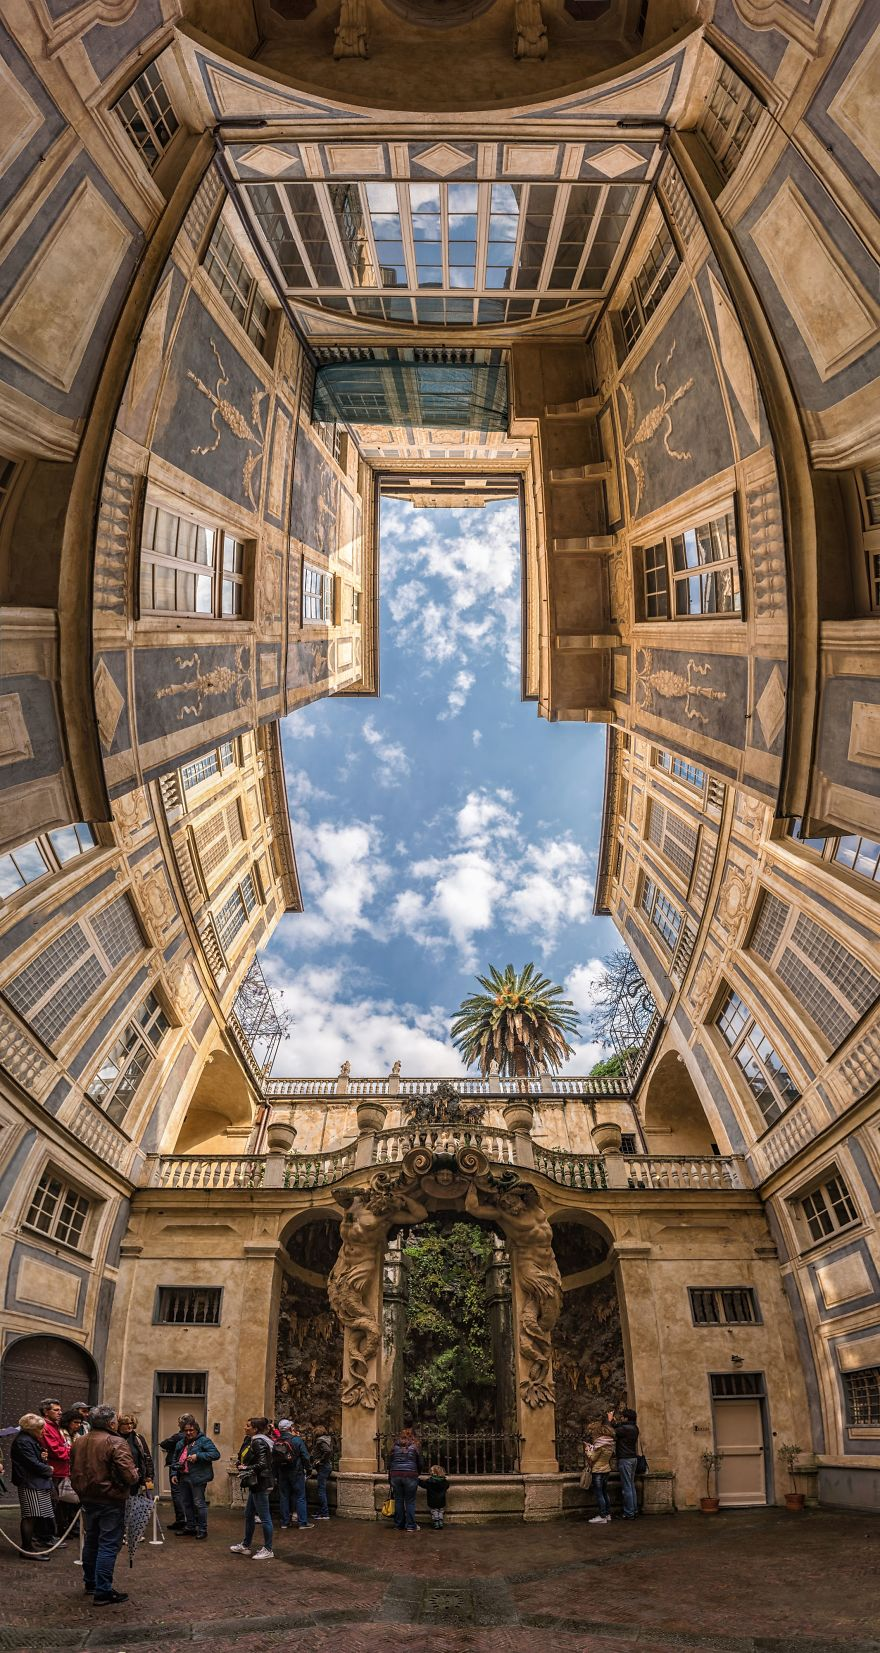 I Shoot Vertical Panorama To Search The Real Form Of Beautiful Architecture